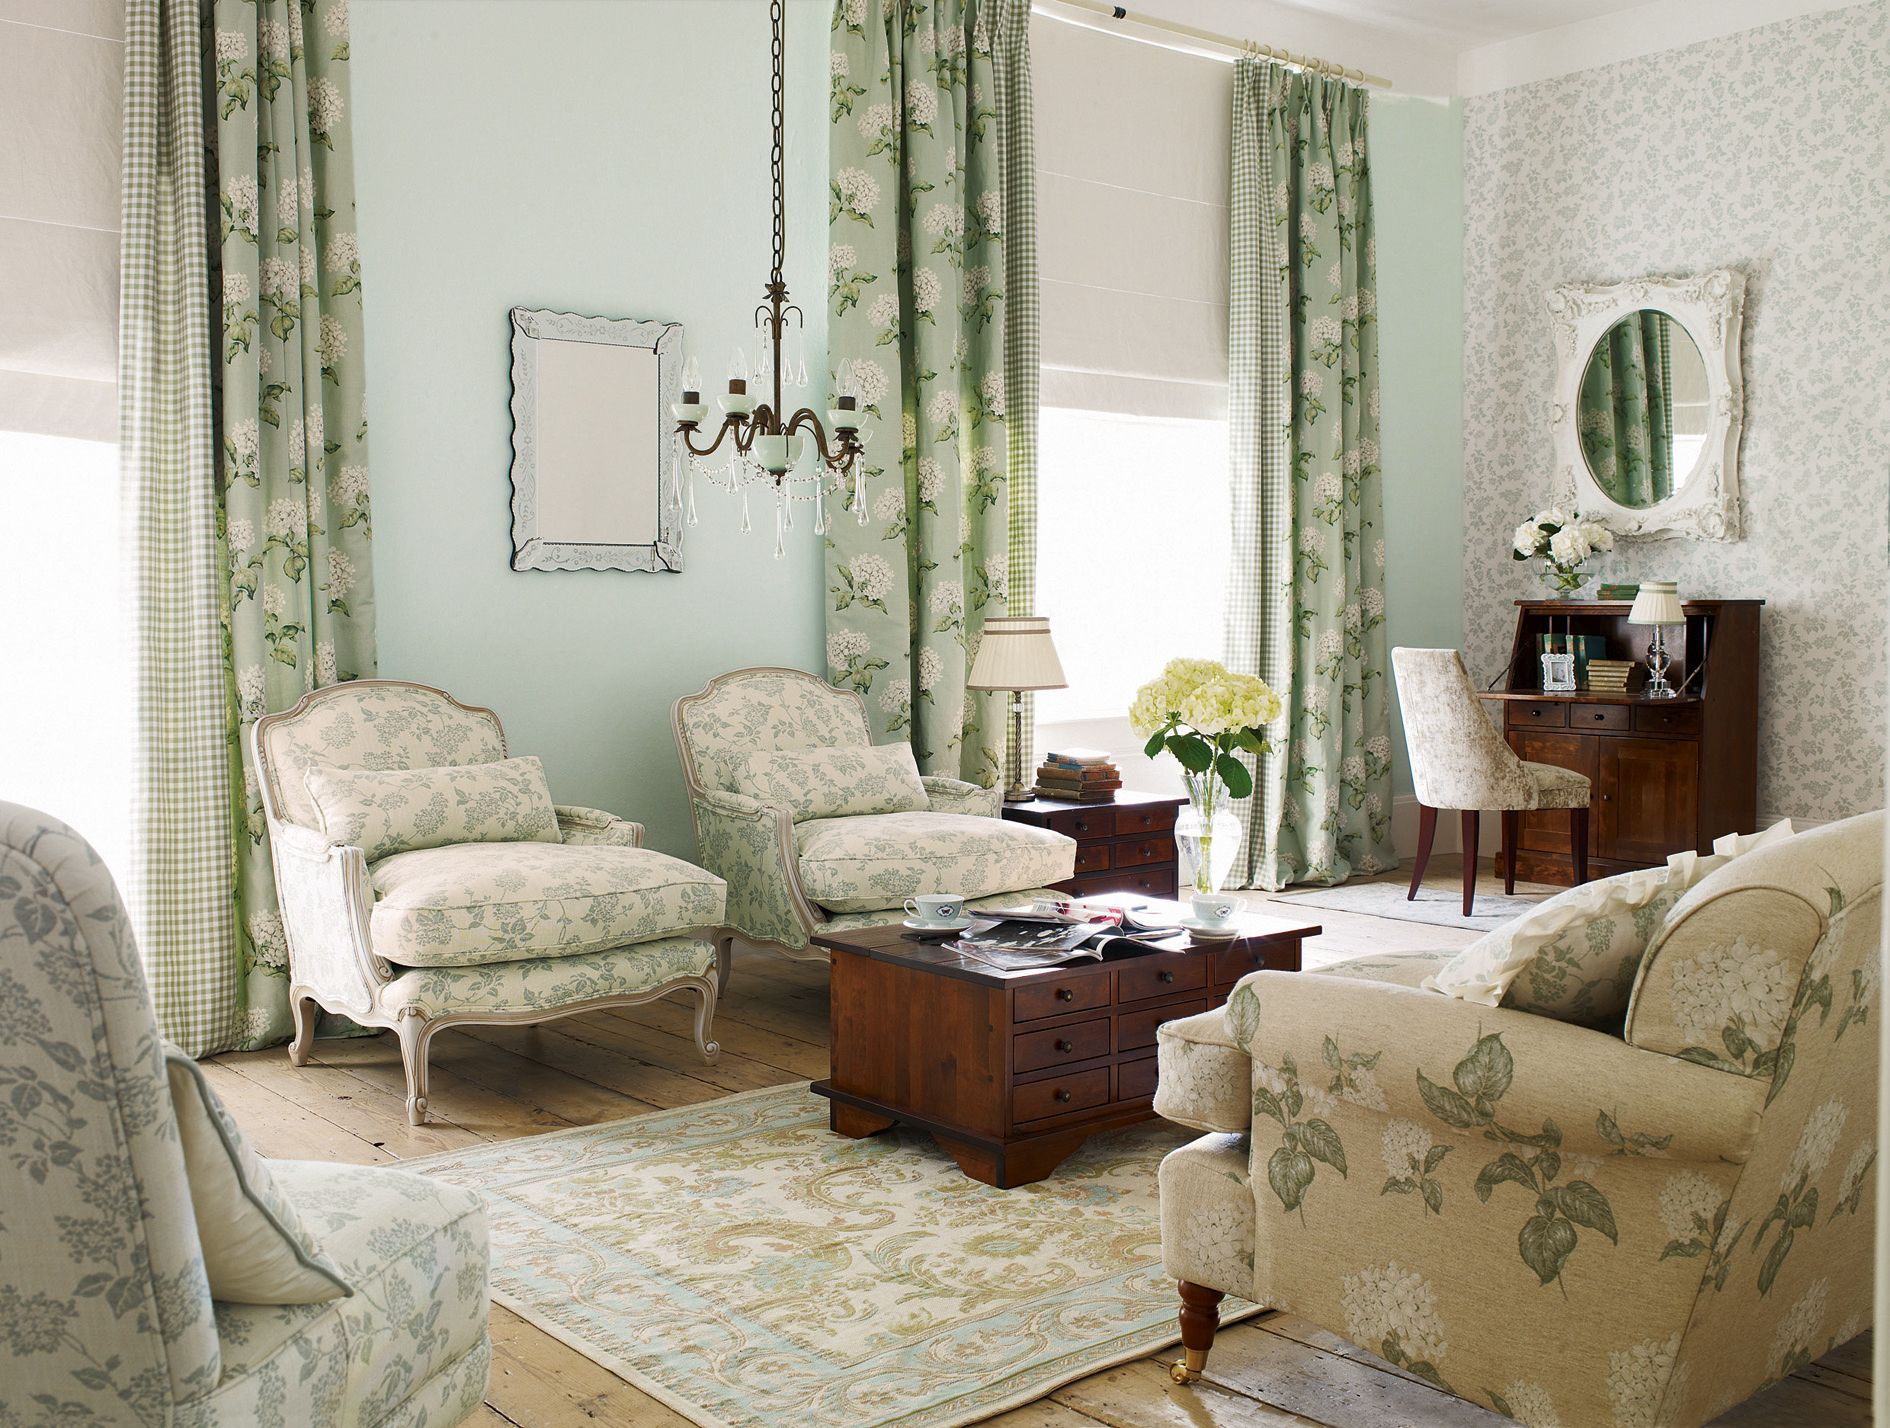 Image Credit: Laura Ashley | Country style furniture, Laura ...